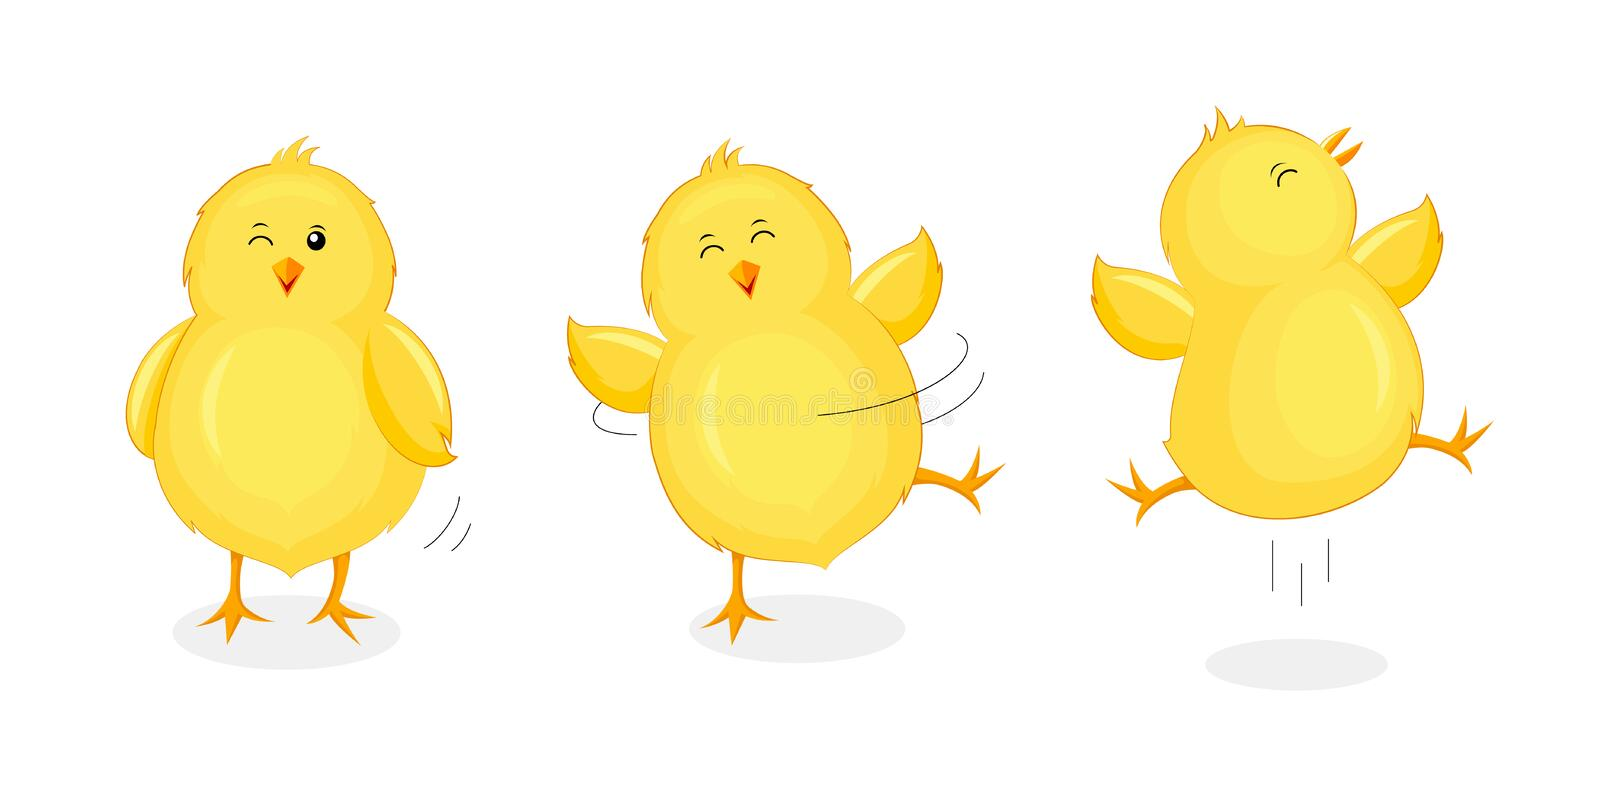 Cute little chicks jumping and dancing. Happy Easter day. Newborn chicks birds, cartoon character design. Illustration isolated on white background vector illustration